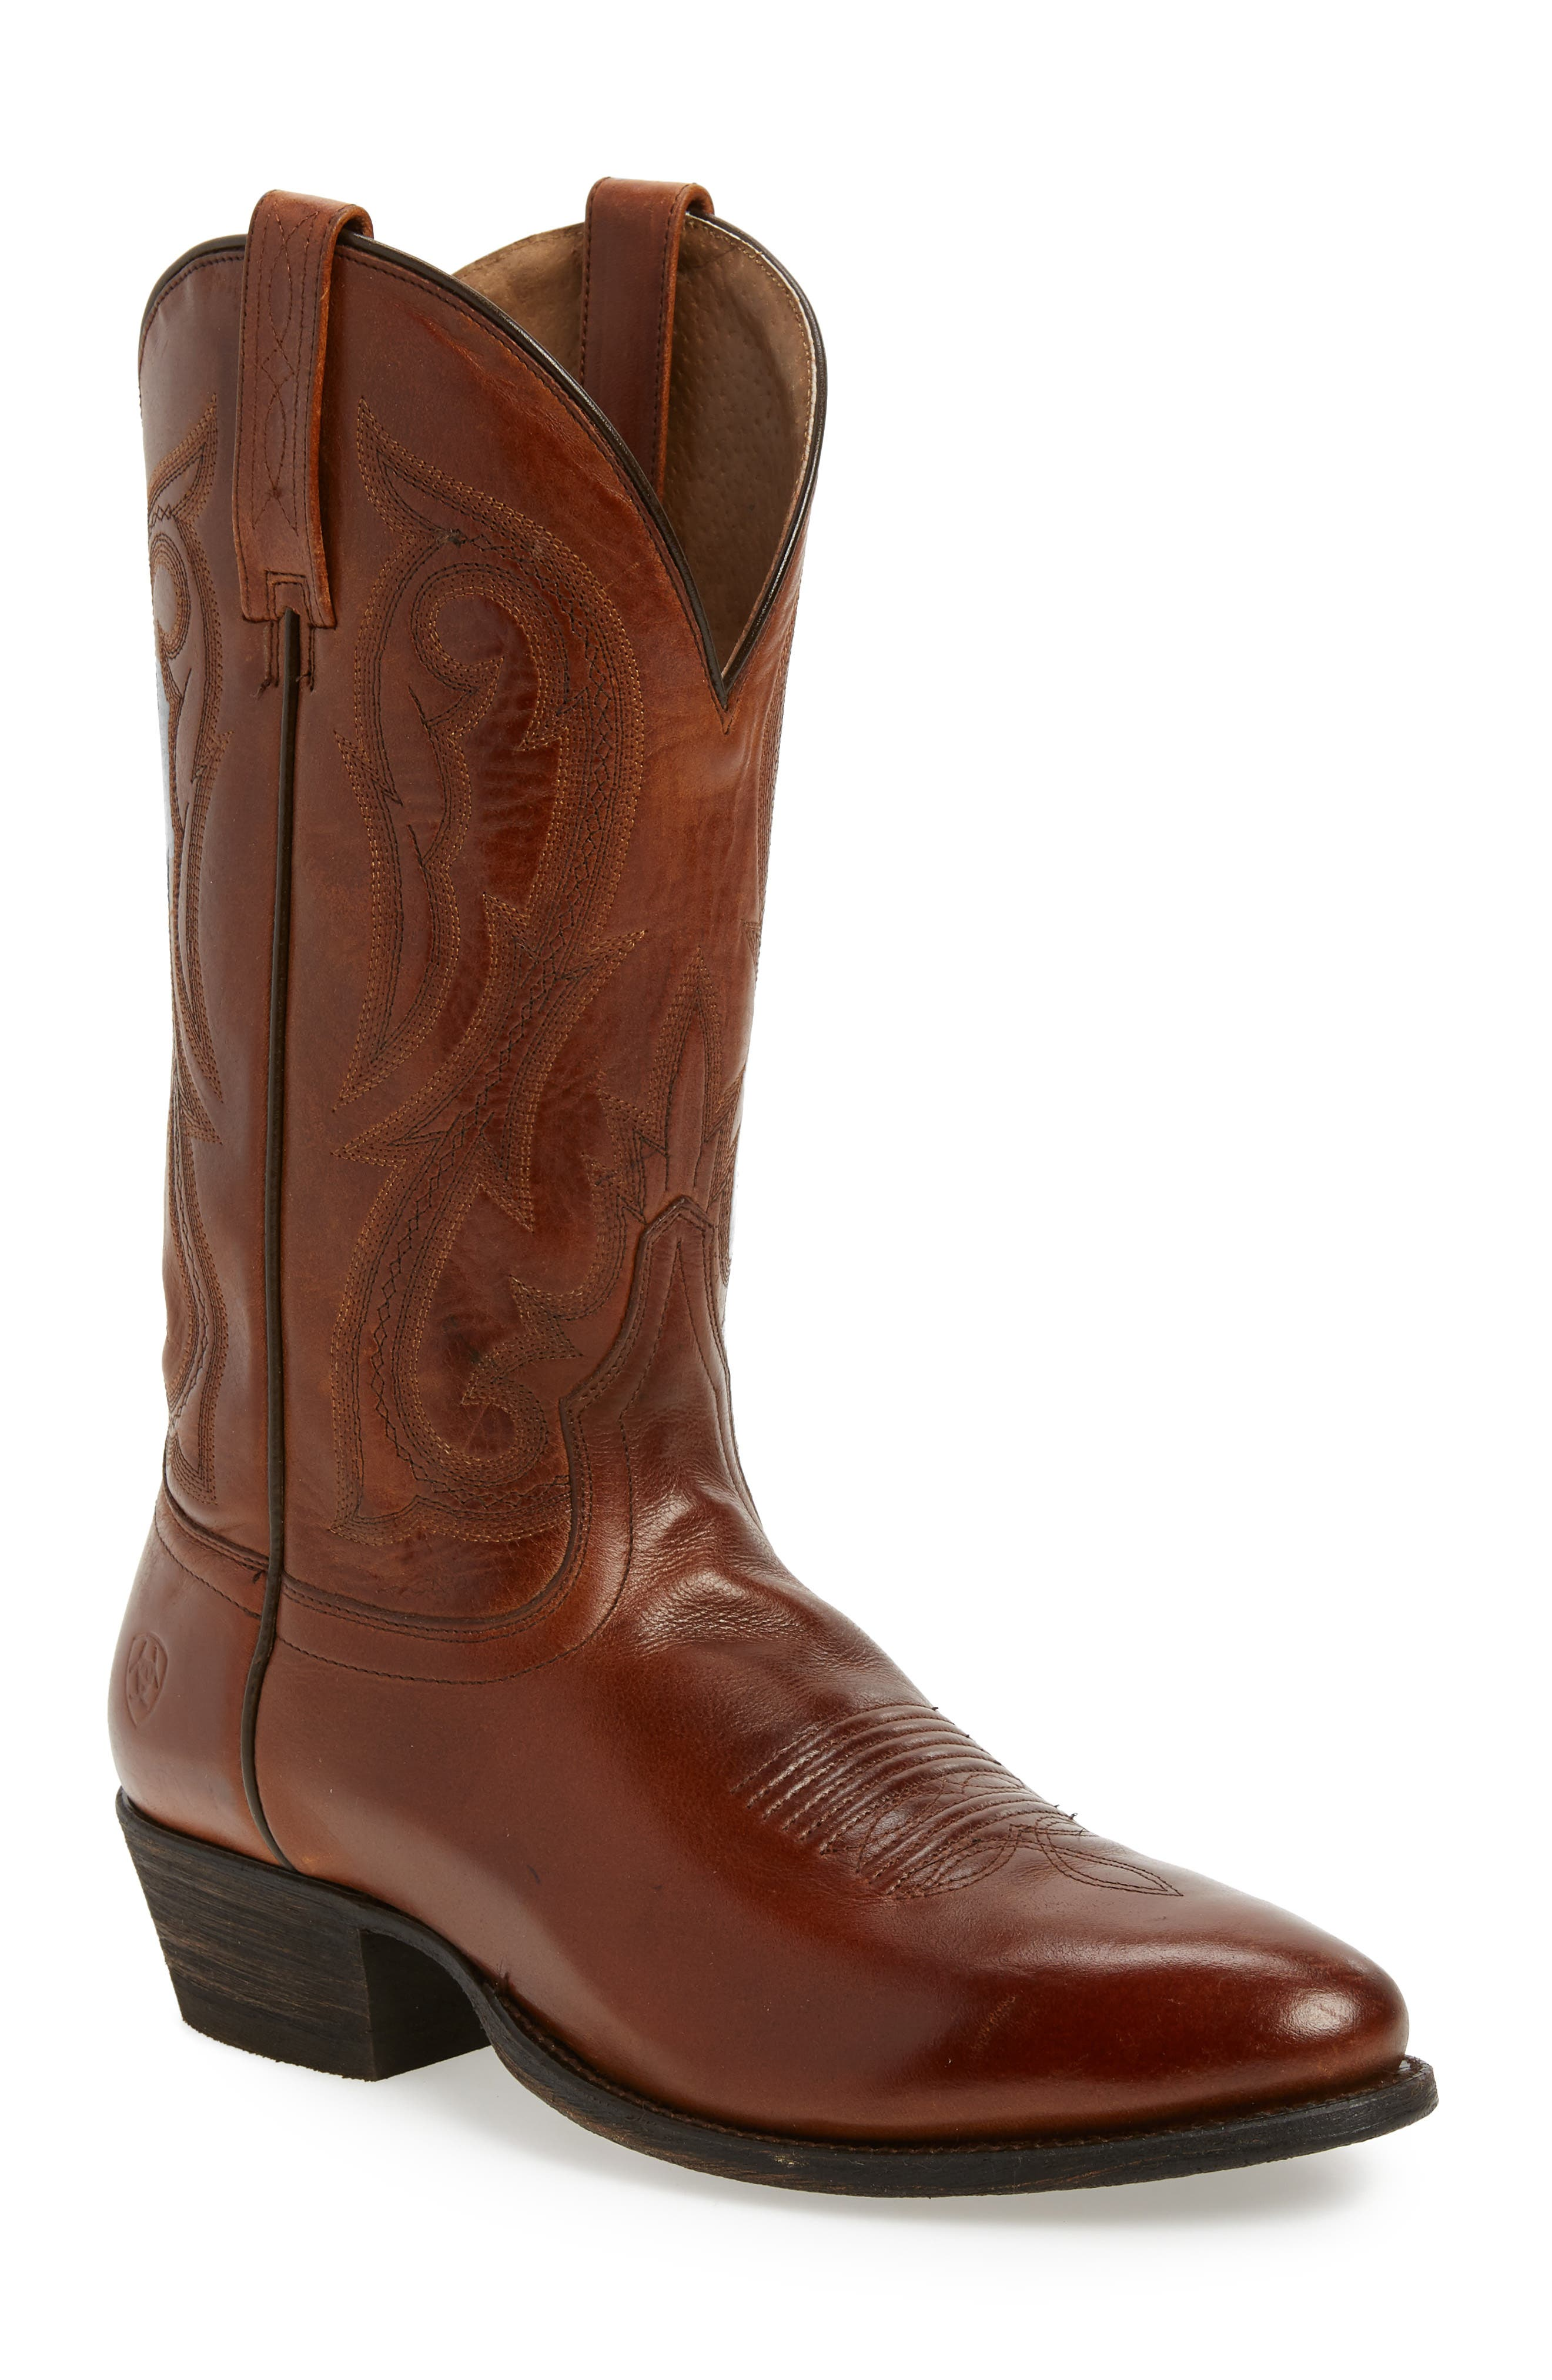 Circuit Tall Cowboy Boot,                             Main thumbnail 1, color,                             Spruced Cognac Leather